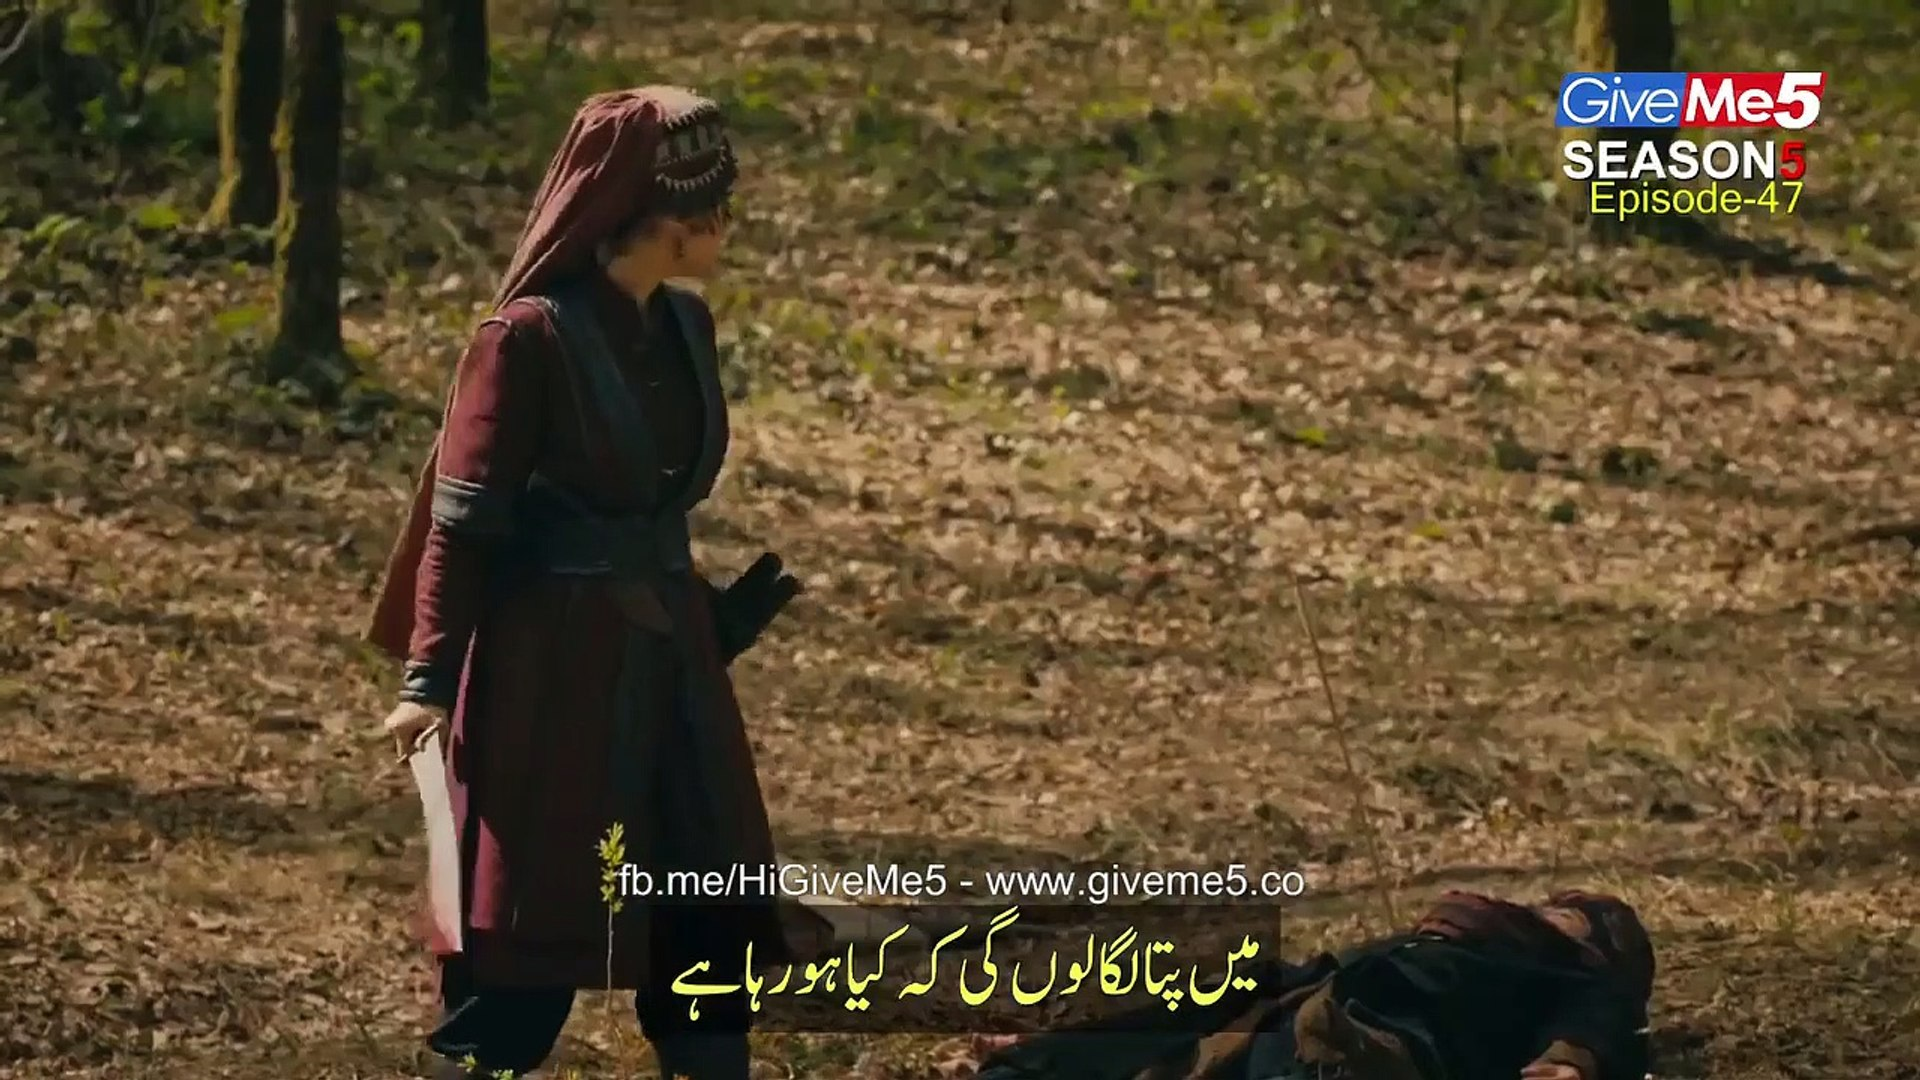 Dirilis Ertugrul Ghazi Season 5 in Urdu Subtitle Episode 47 & 48